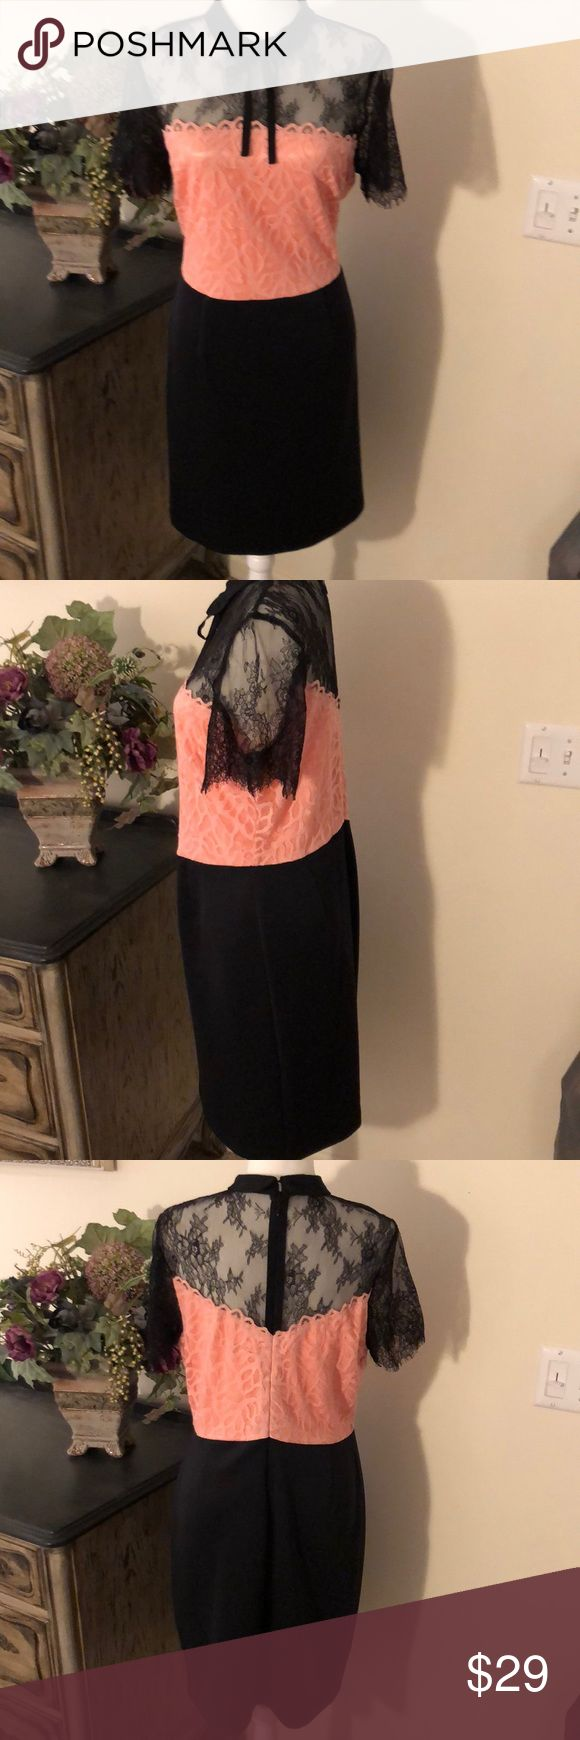 New York & Company Black Peach Lace Dress L New without tags. Never worn or washed. Gorgeous! Solid black skirt with pink peach bodice and lace top with collar and bow. So flattering and cute for all seasons.  20 inches pit to pit 38 inches shoulder down. New York & Company Dresses